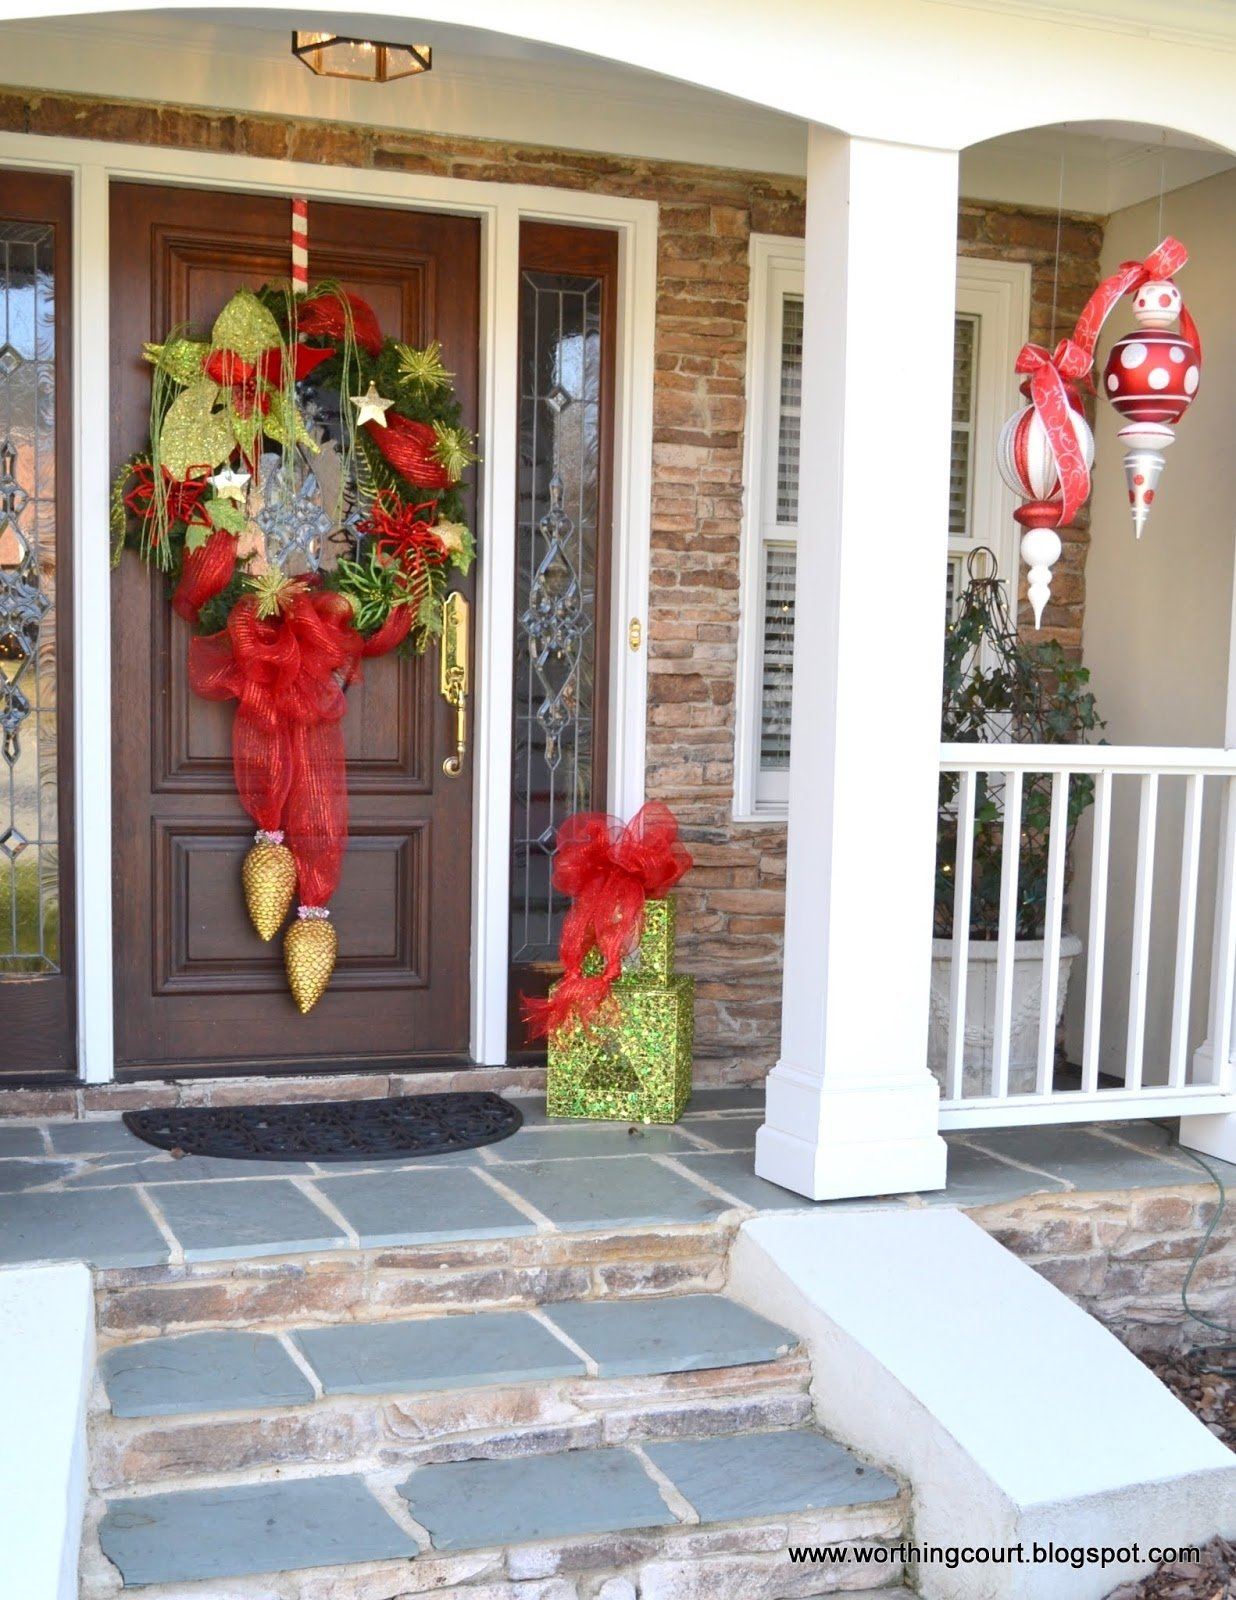 10 Nice Front Porch Christmas Decorating Ideas best perfect christmas decorations for front porch latest decorating 2020